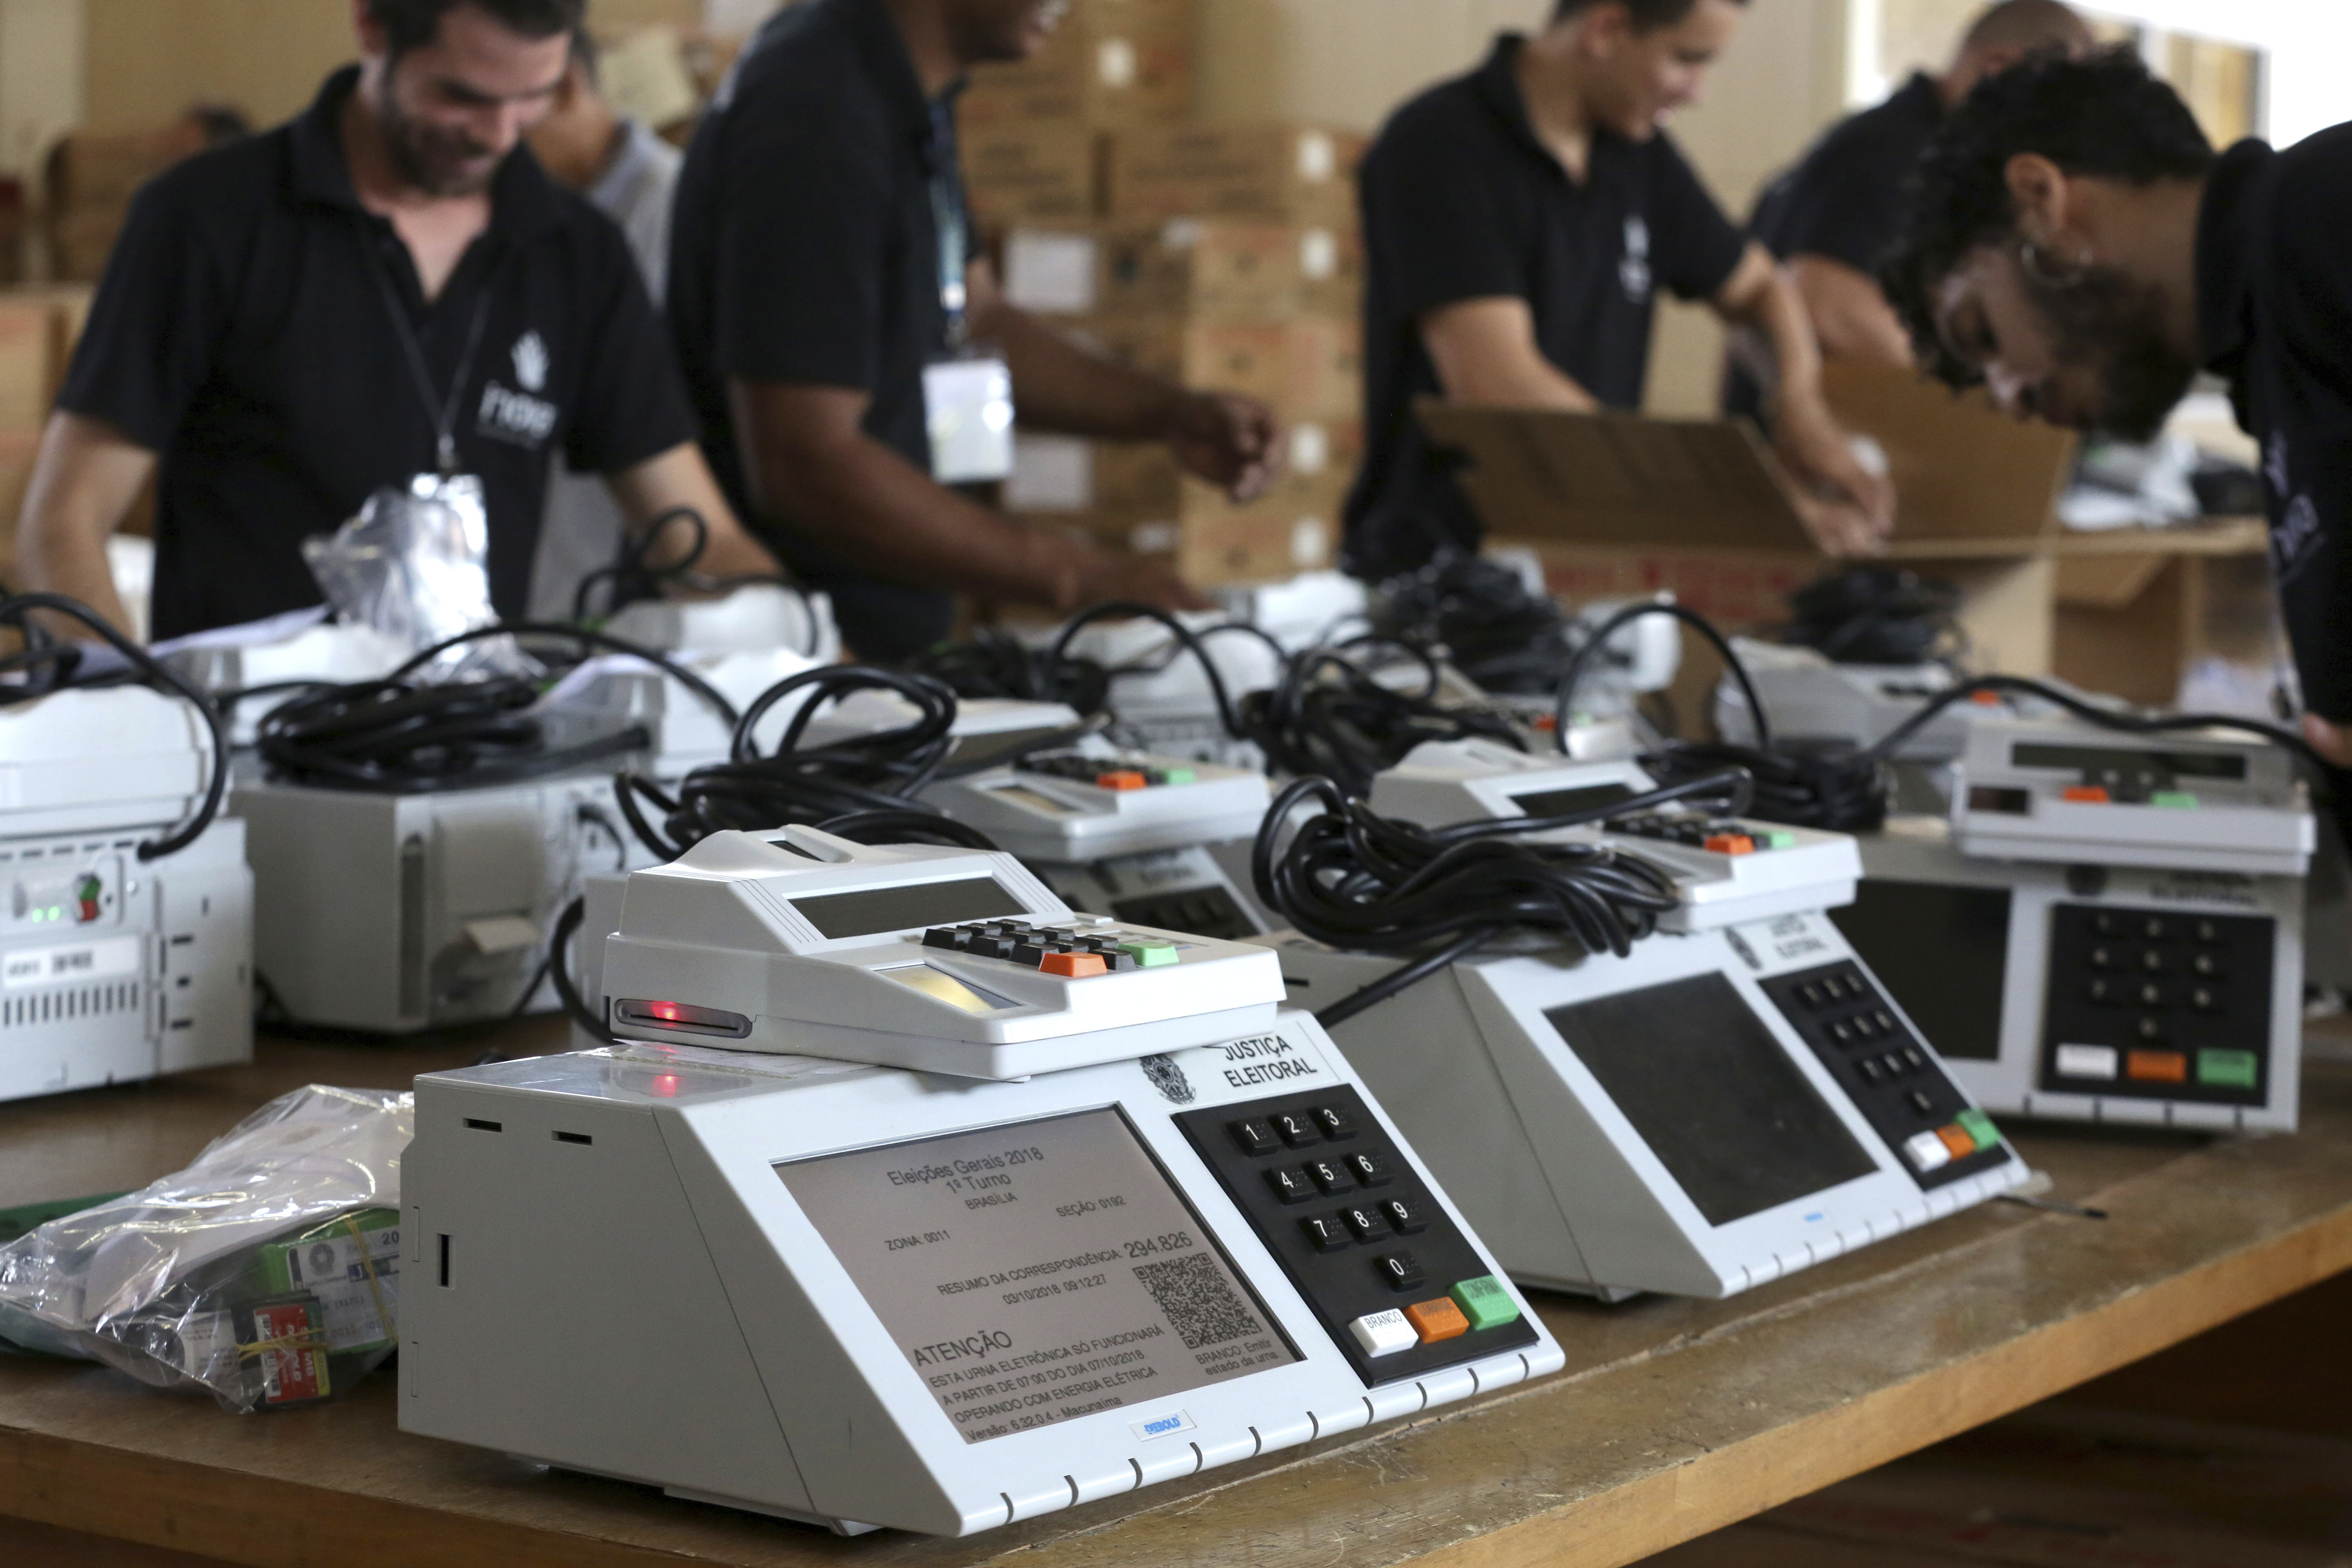 Employees of the Regional Electoral Tribunal work on preparing voting machines in Brasilia, Brazil, Oct. 3, 2018. Brazilian will hold general elections on Oct. 7.